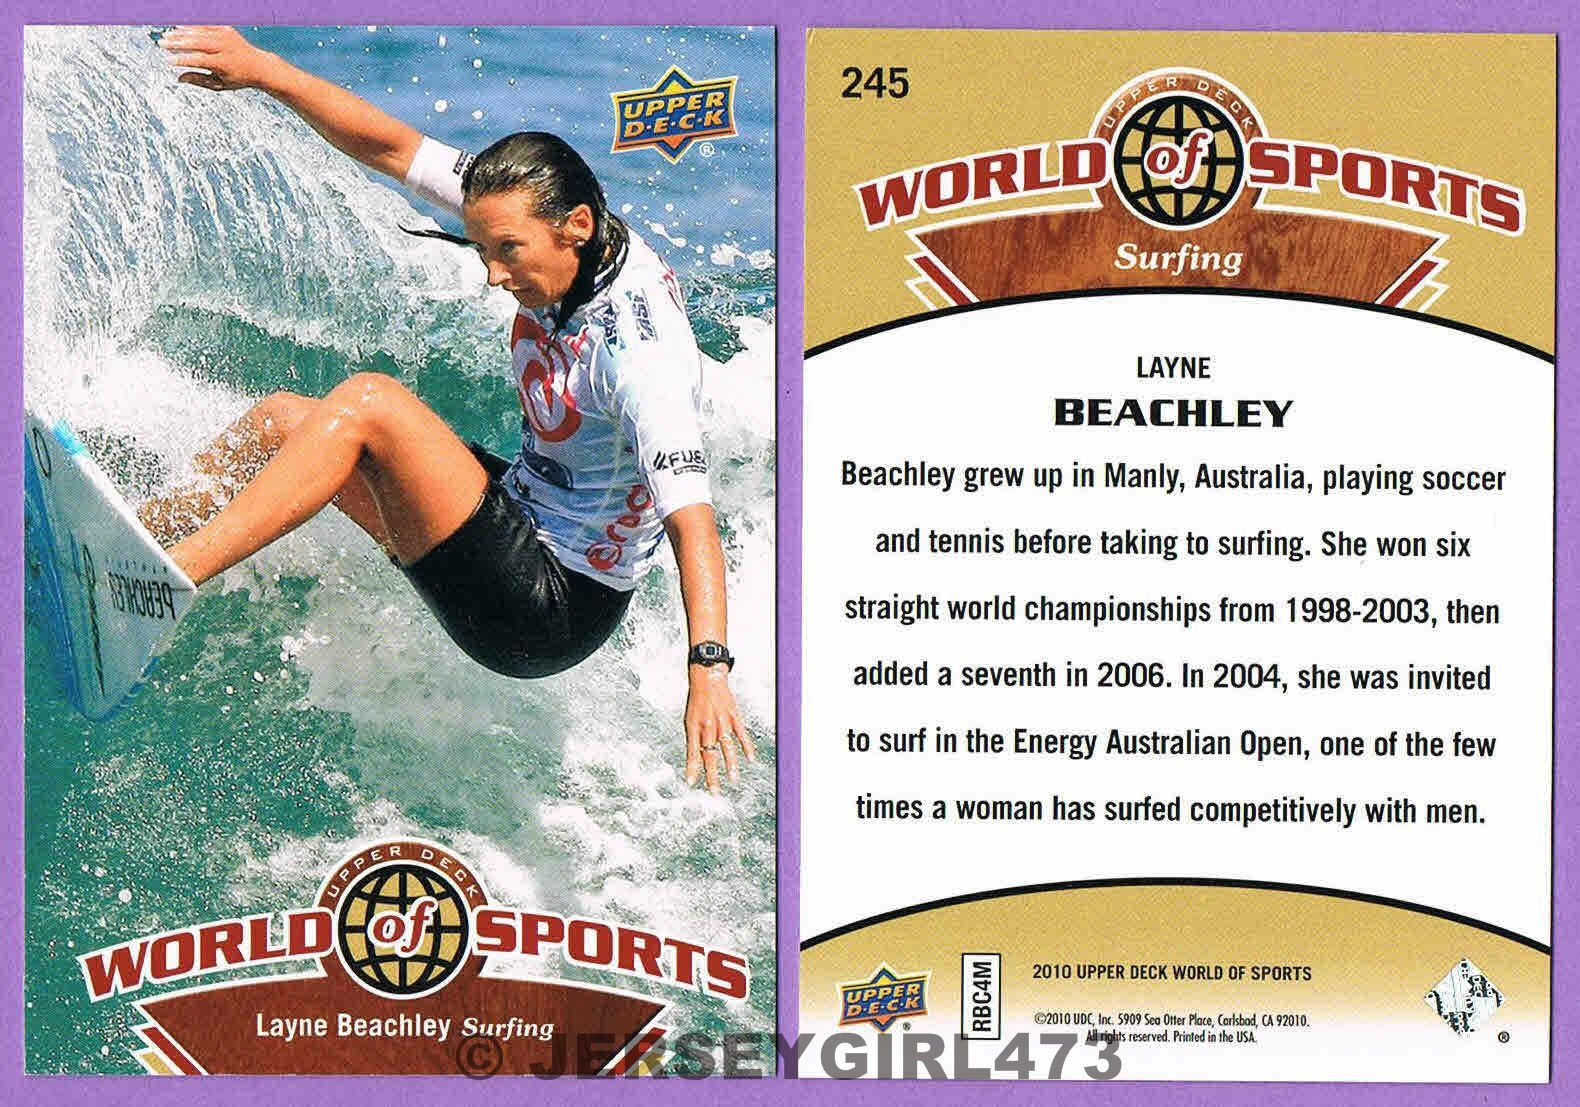 Layne Beachley 2010 Upper Deck World of Sports Surfing Card #245